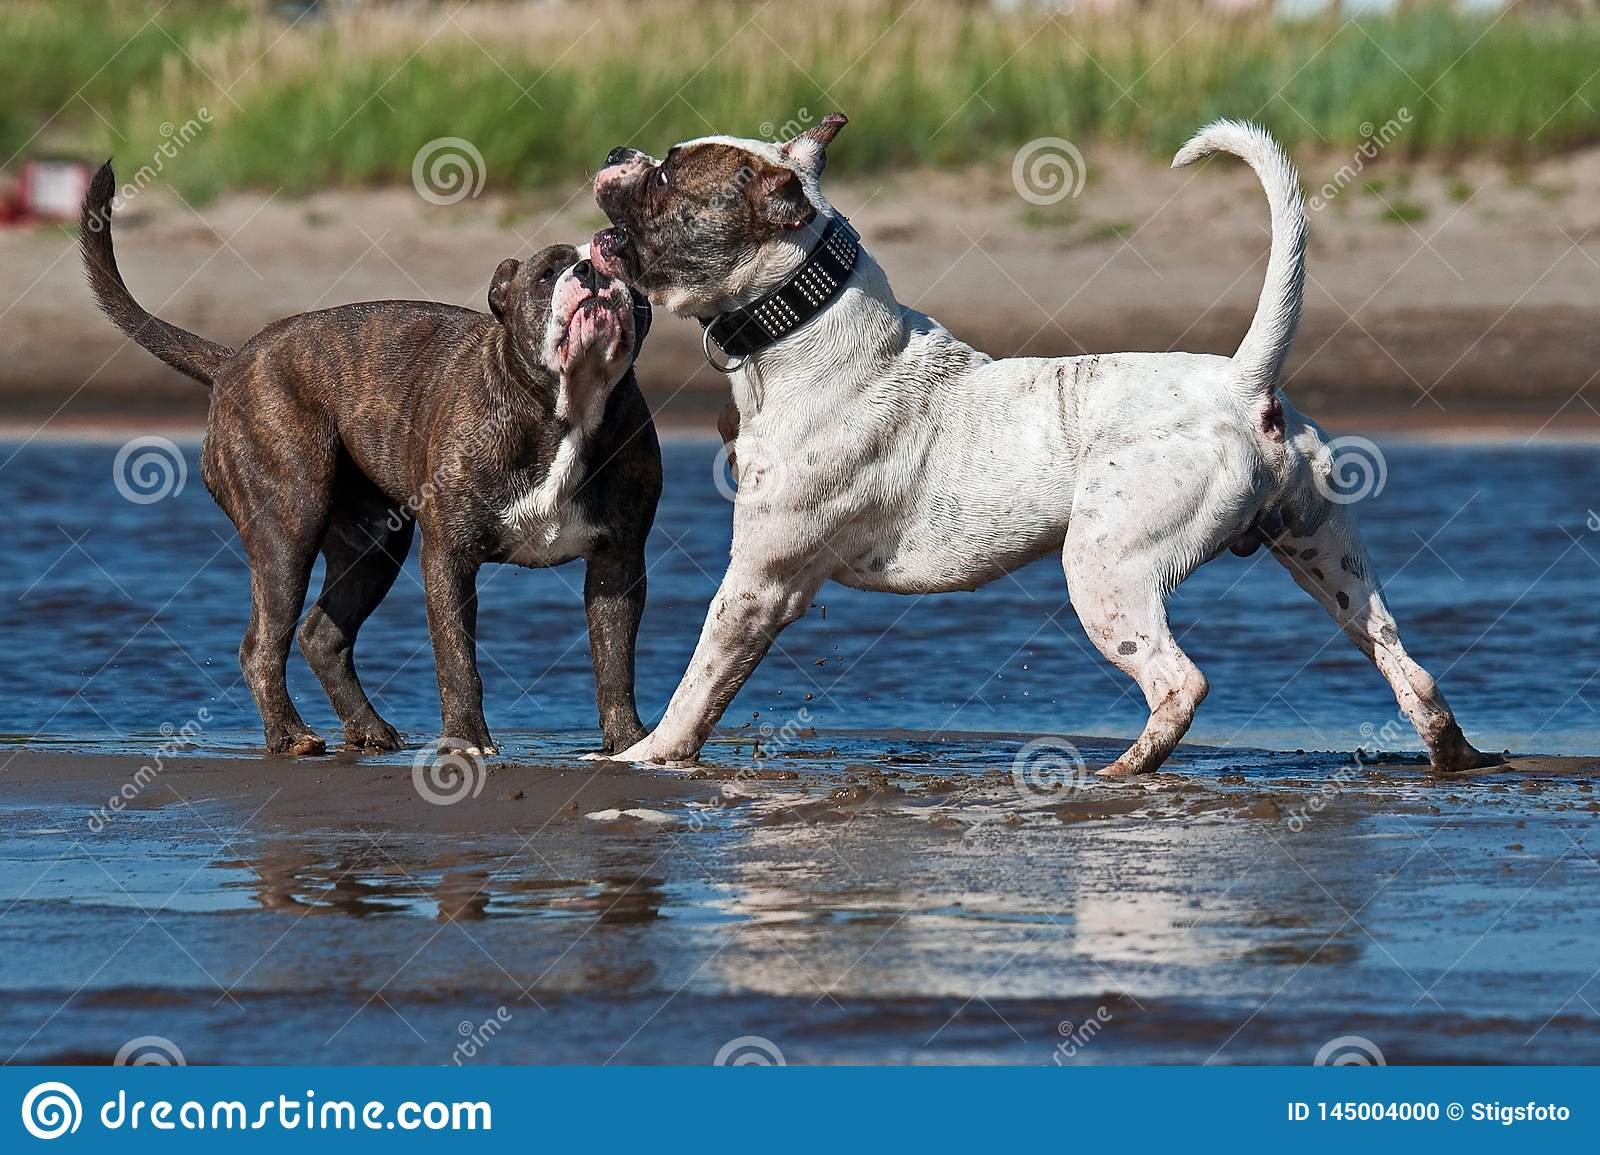 American Bulldog play fighting with a Old English